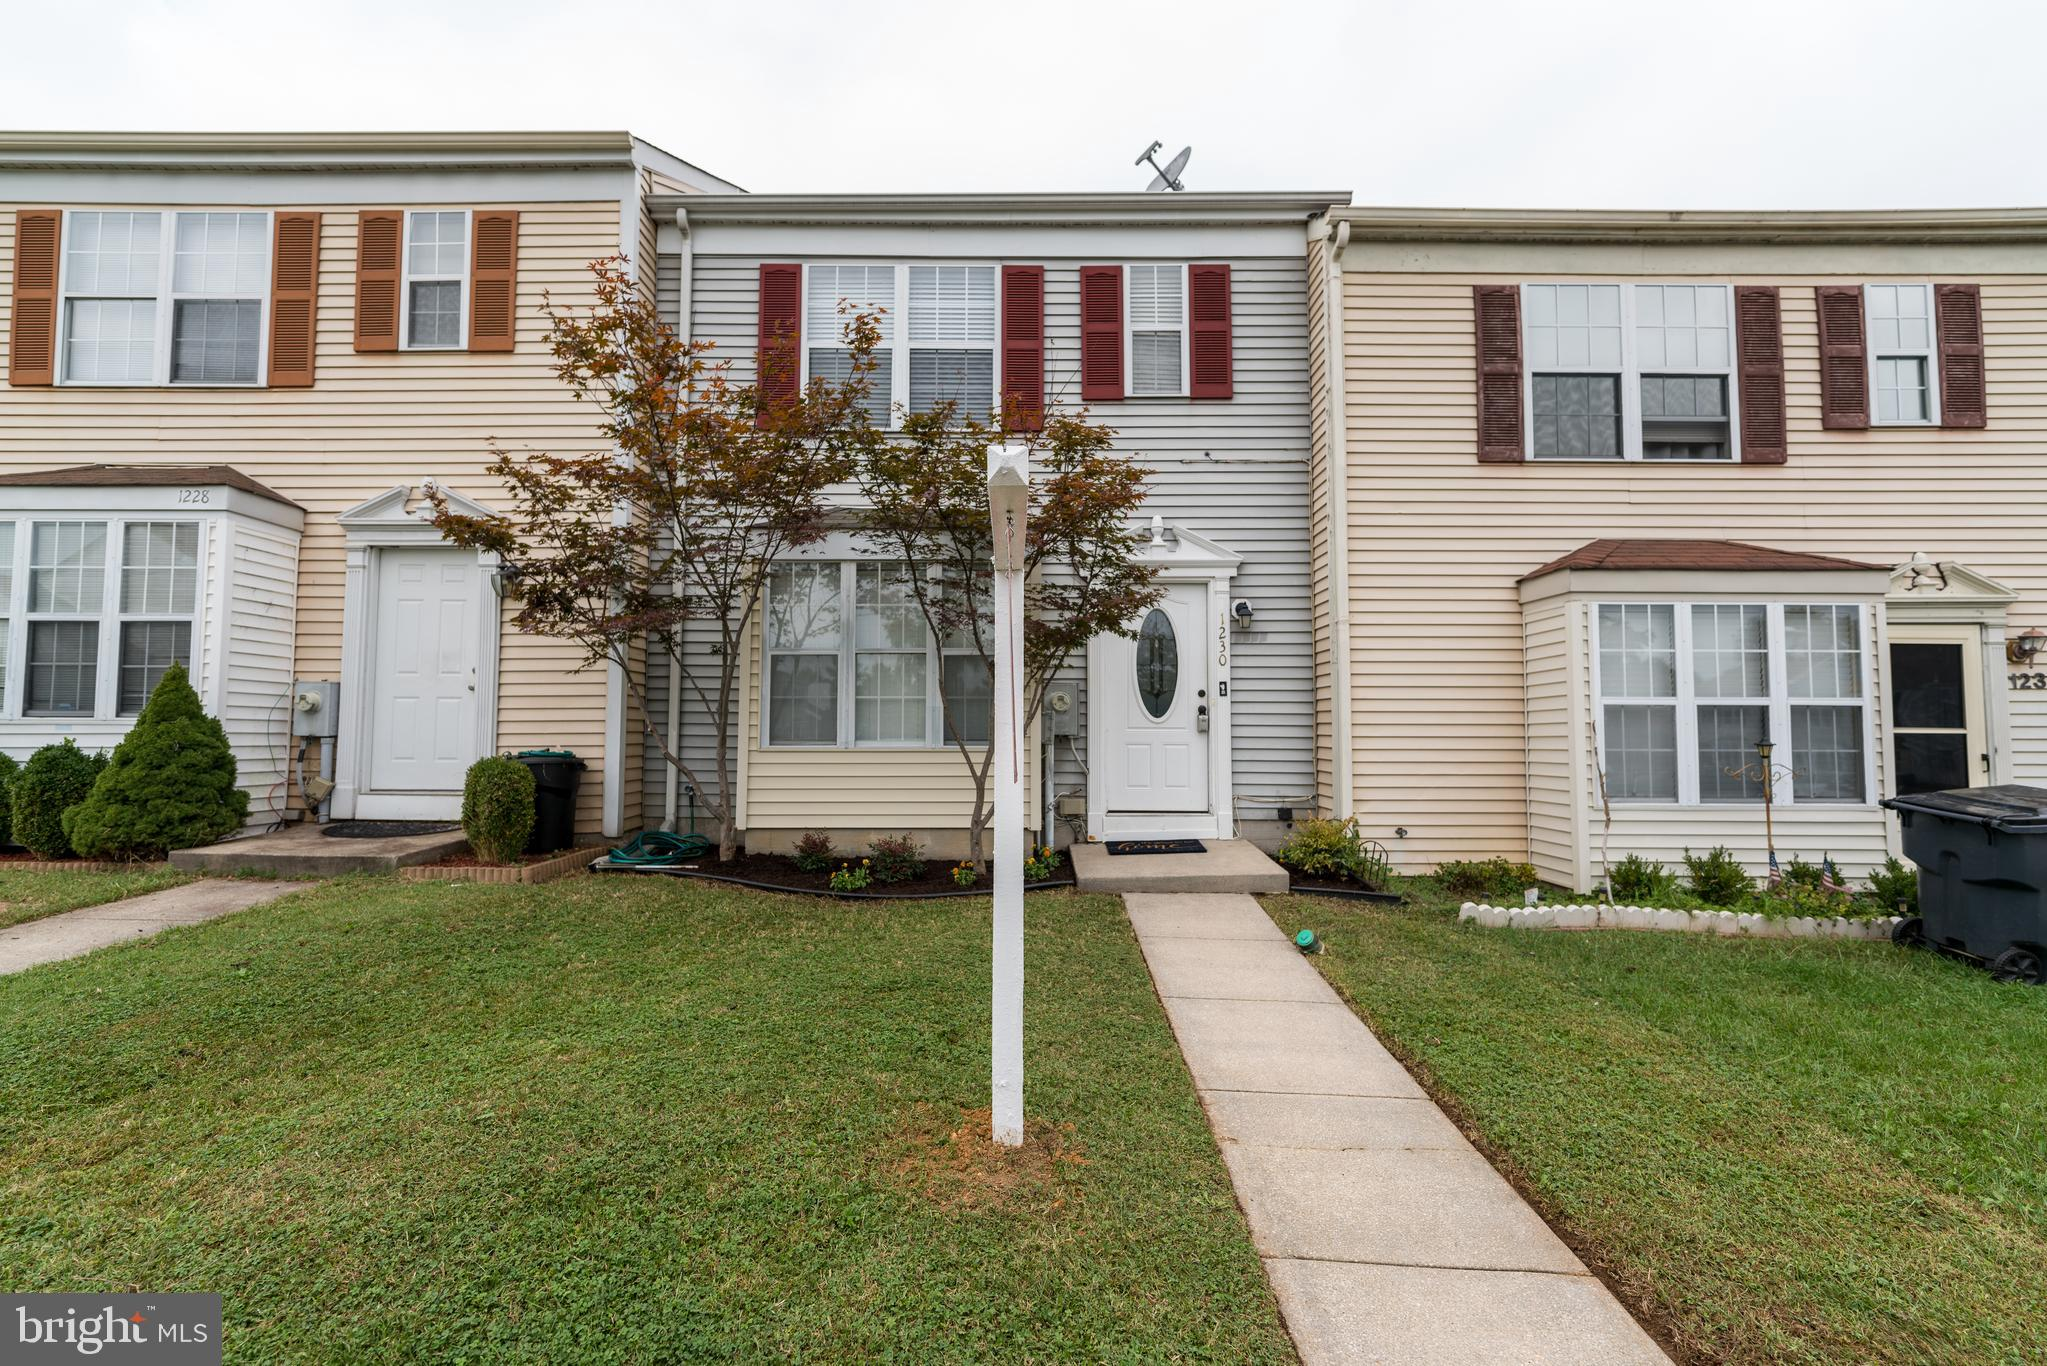 Impeccably maintained 3 bedroom 1.5 bath townhome in the great community of Greys Landing in Belcamp! The community has many amenities including a pool and recreation center.   The kitchen is updated with all stainless steel appliances and a contemporary white subway  tile backsplash. Large family room with laminate flooring that leads to rear patio and fully fenced in backyard.   The shed outside is great for storage and the concrete patio is perfect for entertaining. Upstairs there are 3  large bedrooms with newer carpet and a full bath.  Appliances are in great condition and the home comes with a Nest thermostat system.  Come check out this lovely home.  More photos to come!